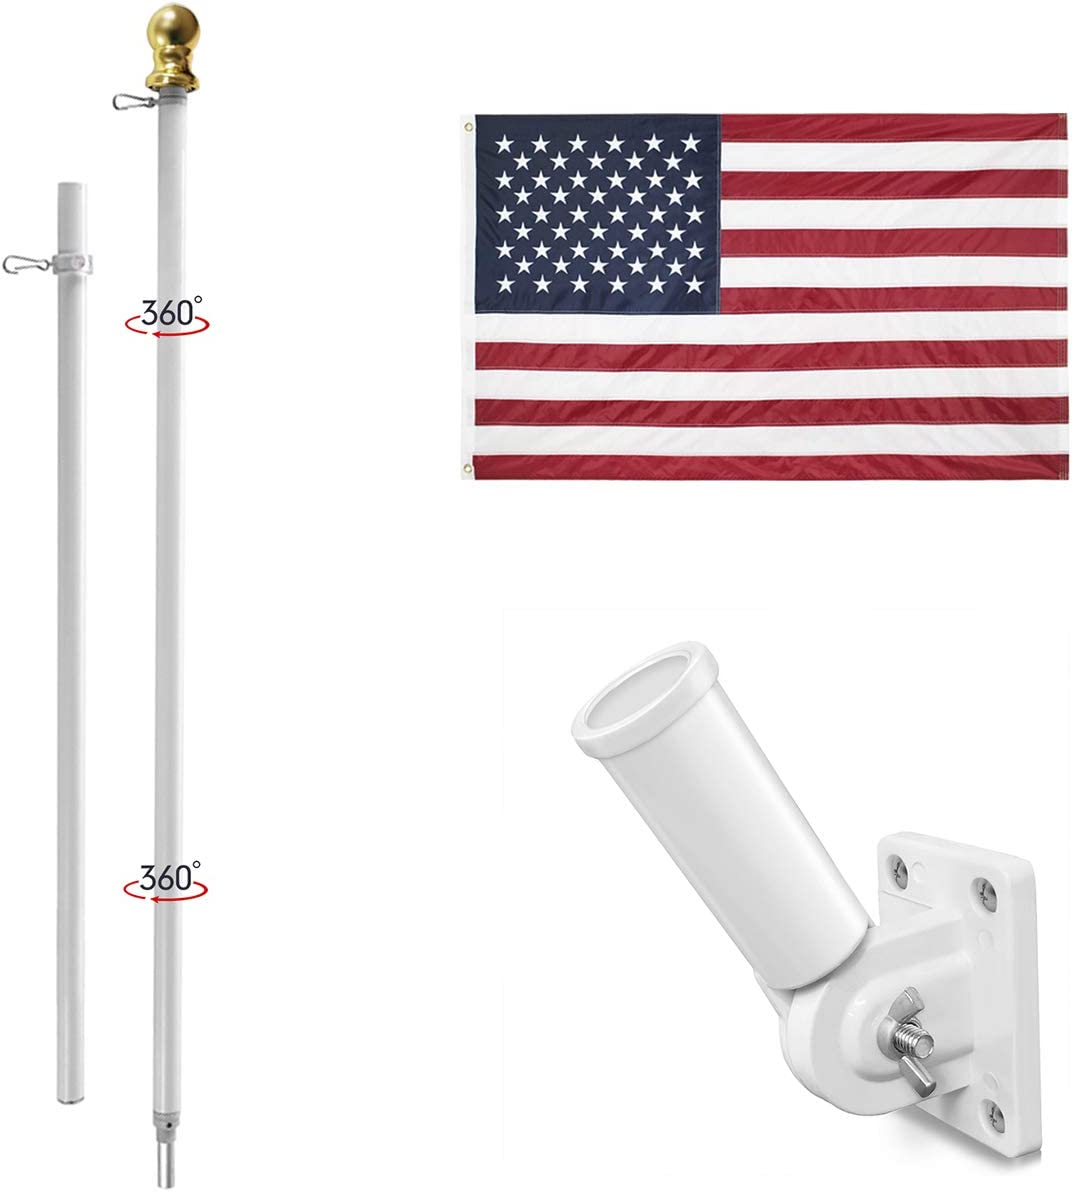 Jetlifee 3x5 Ft American Flag Pole Kit – Including US Flag with Embroidered Stars Sewn Stripes, 6 Ft No Tangle Flagpole Aluminum, Adjustable Pole Bracket Heavy Duty White Colored Wind Resistant